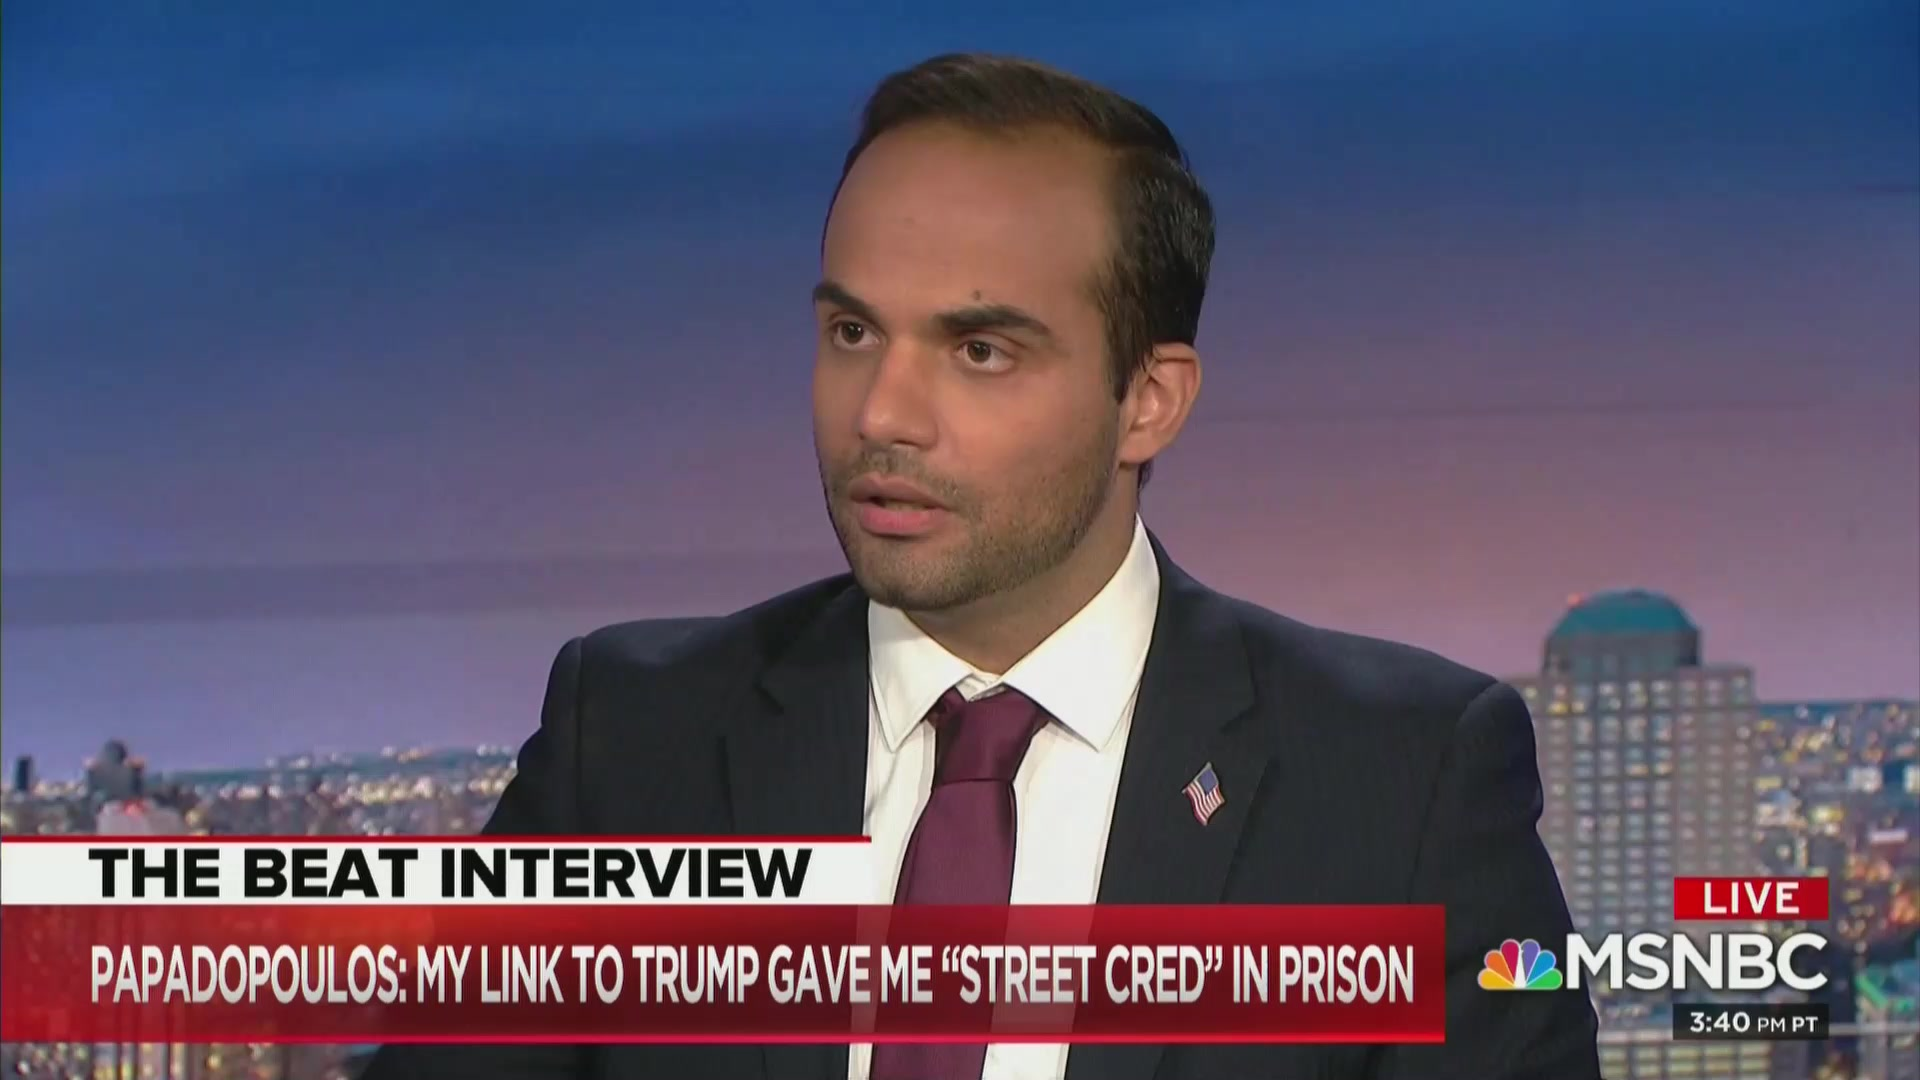 George Papadopoulos: I Had 'Street Cred' In Prison Because It Was 'Trump Country'